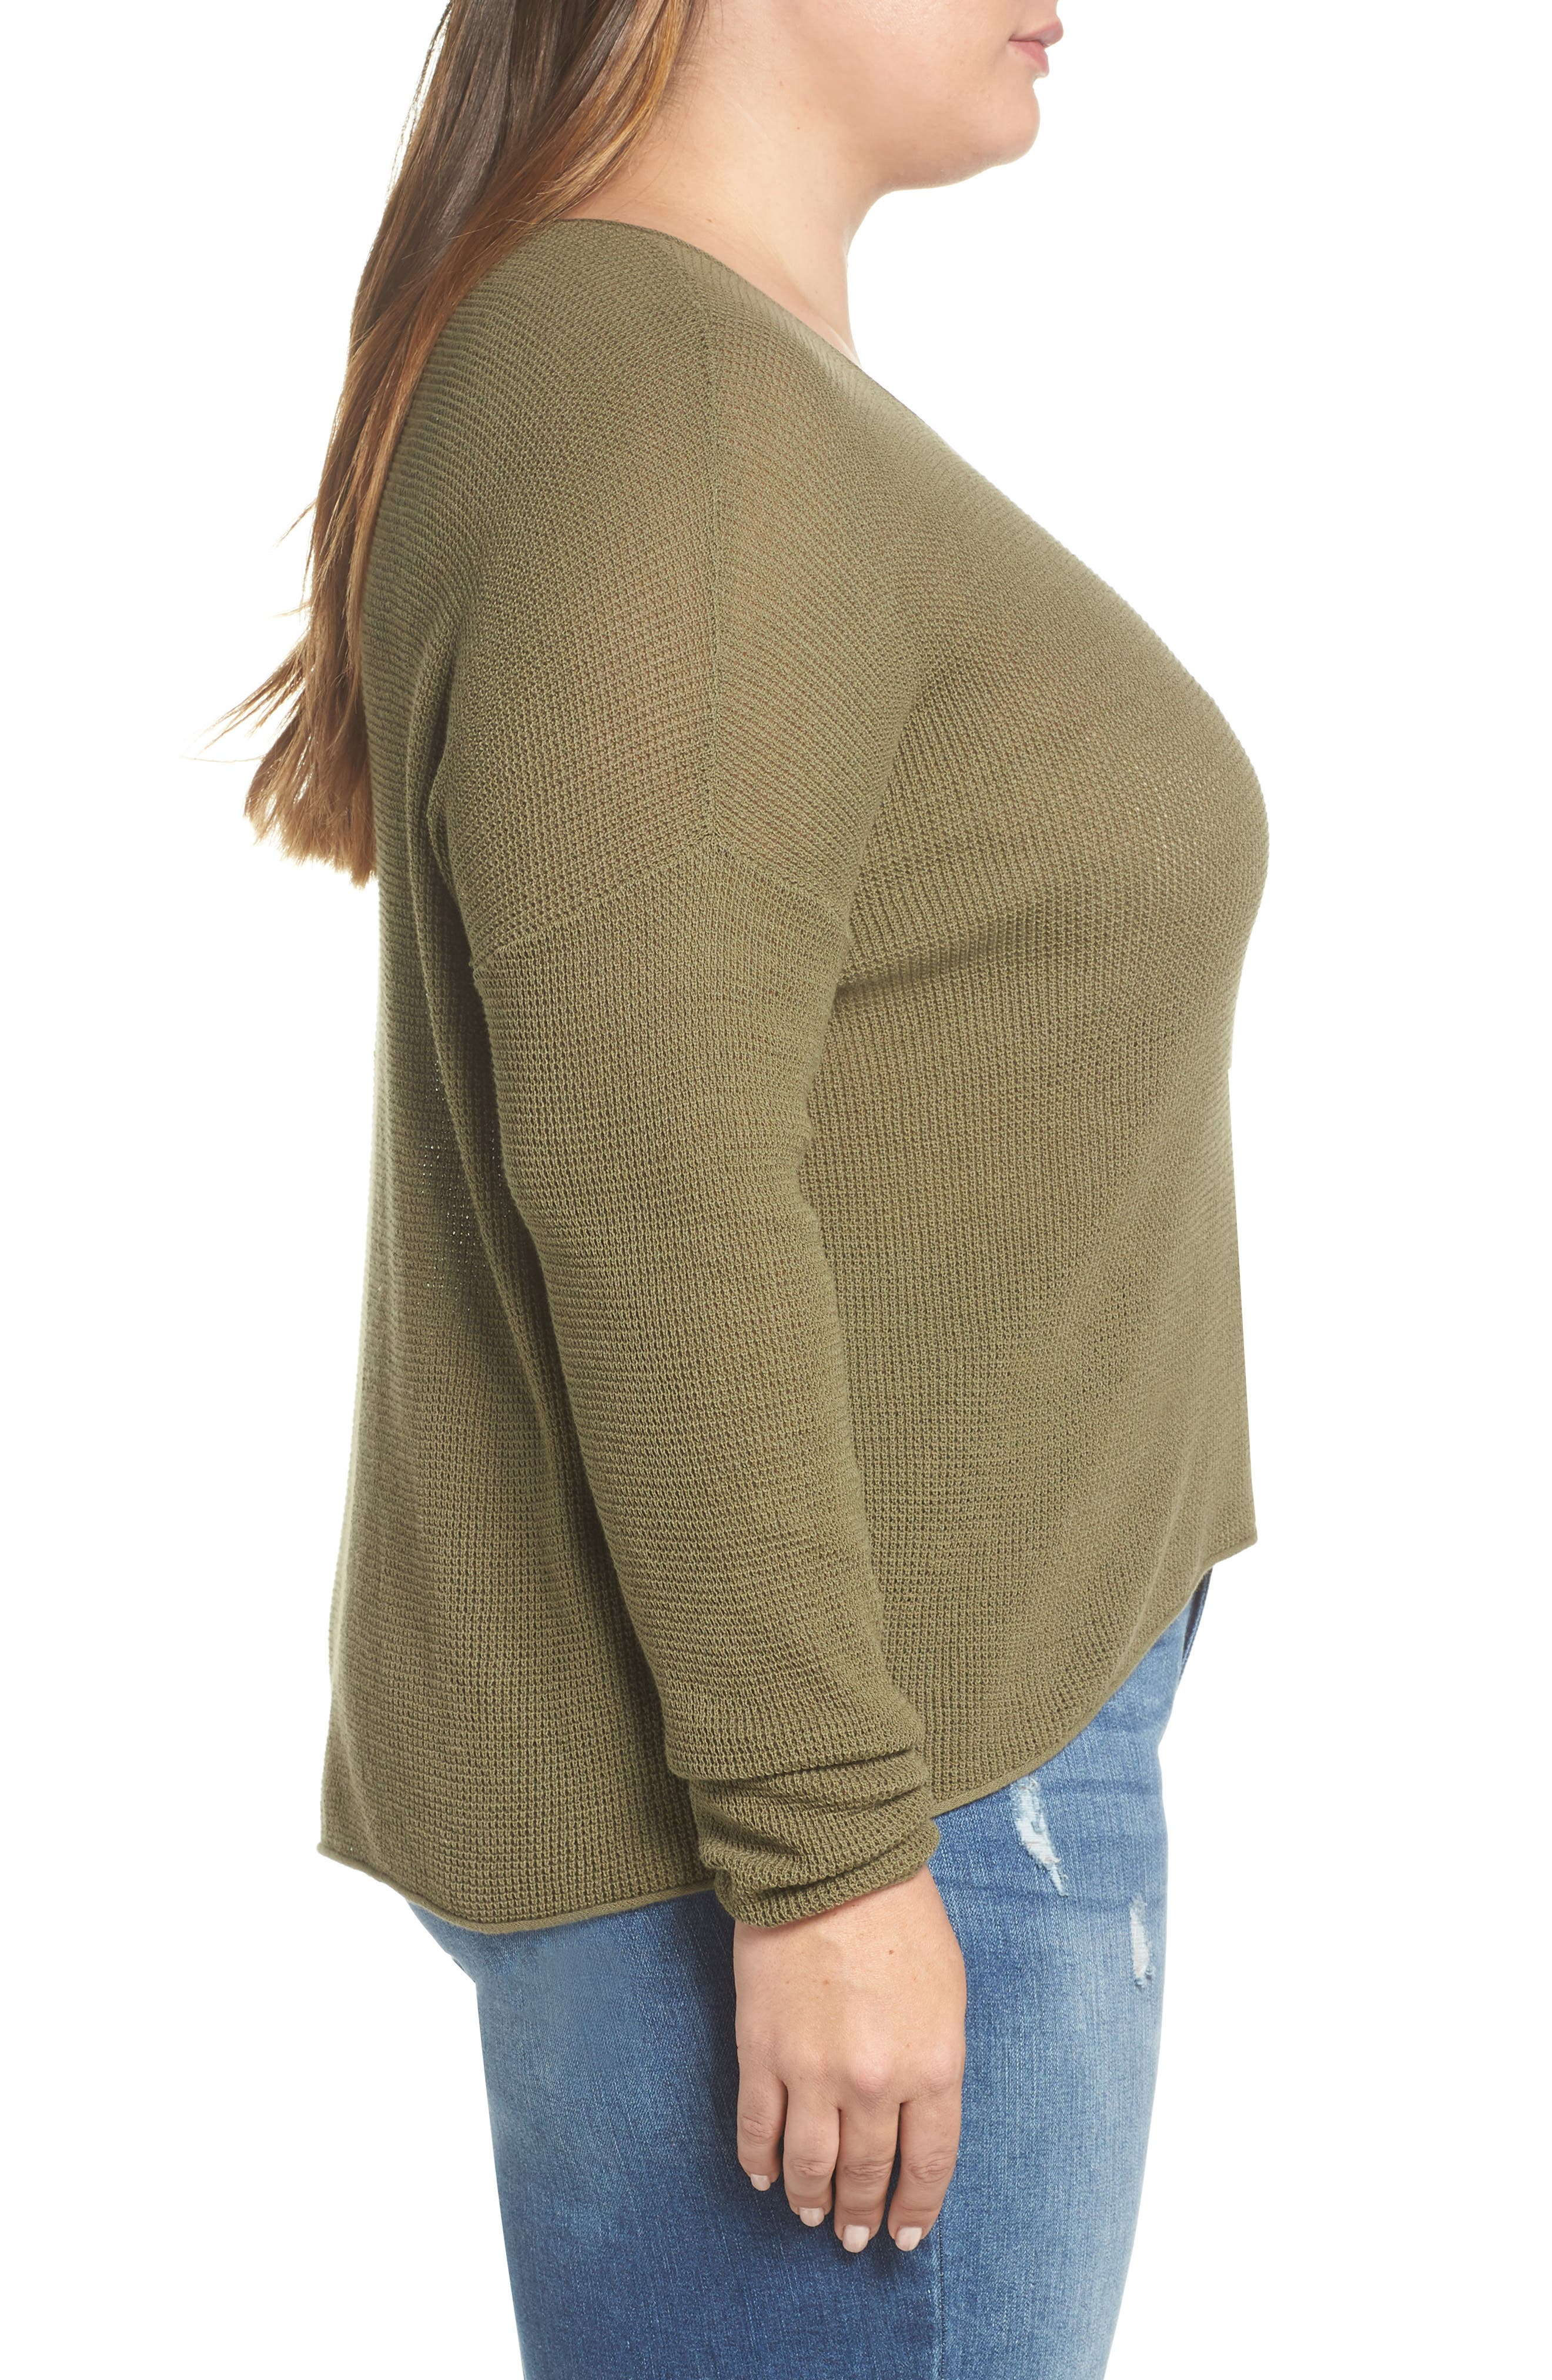 Coastal Thermal Sweater,                             Alternate thumbnail 9, color,                             OLIVE BURNT